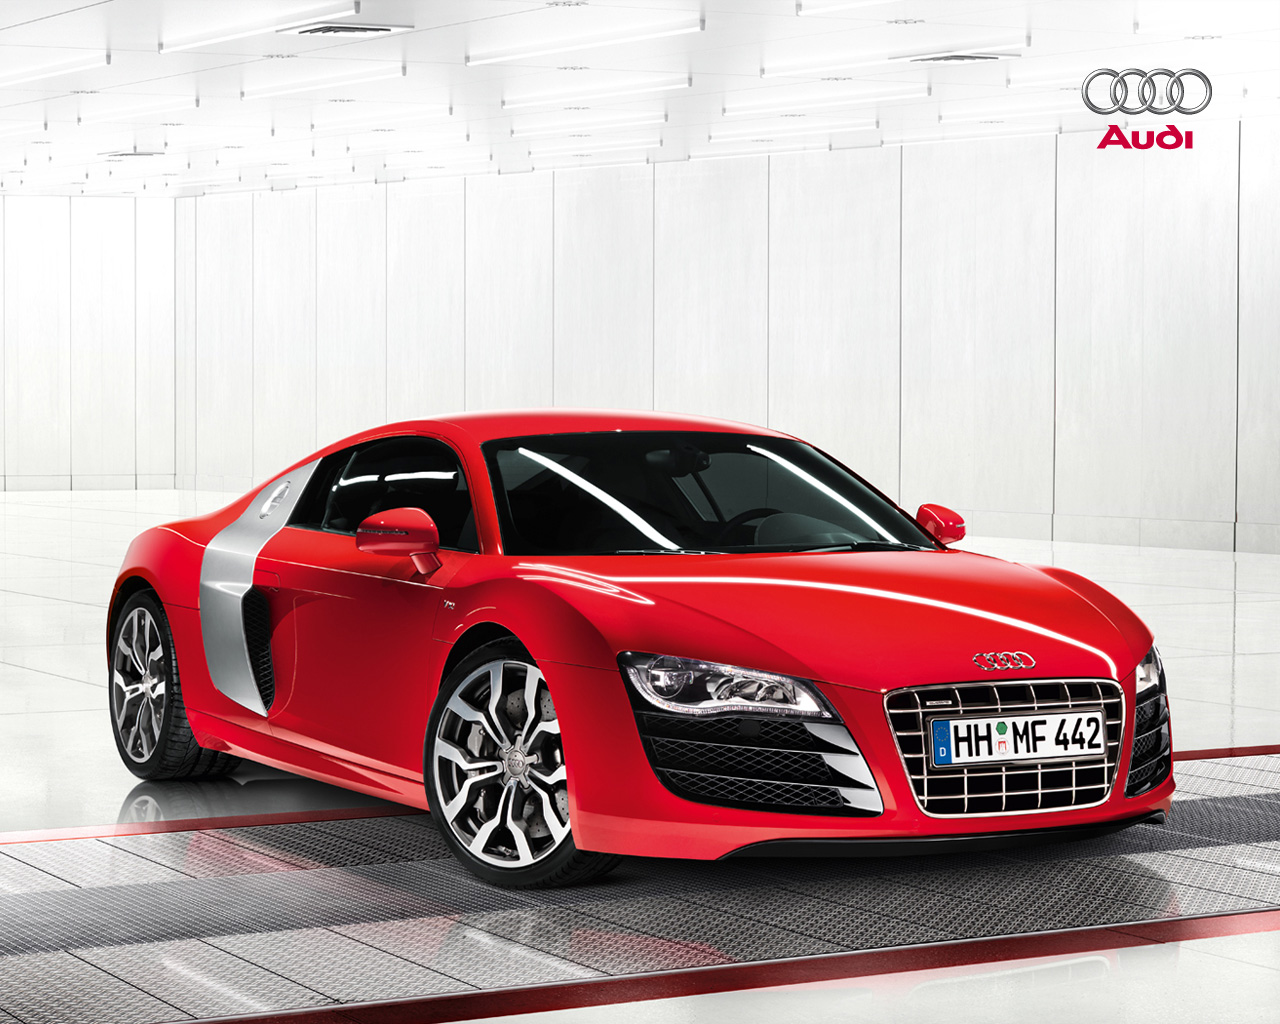 audi r8 5 2 audi wallpaper 32025757 fanpop. Black Bedroom Furniture Sets. Home Design Ideas